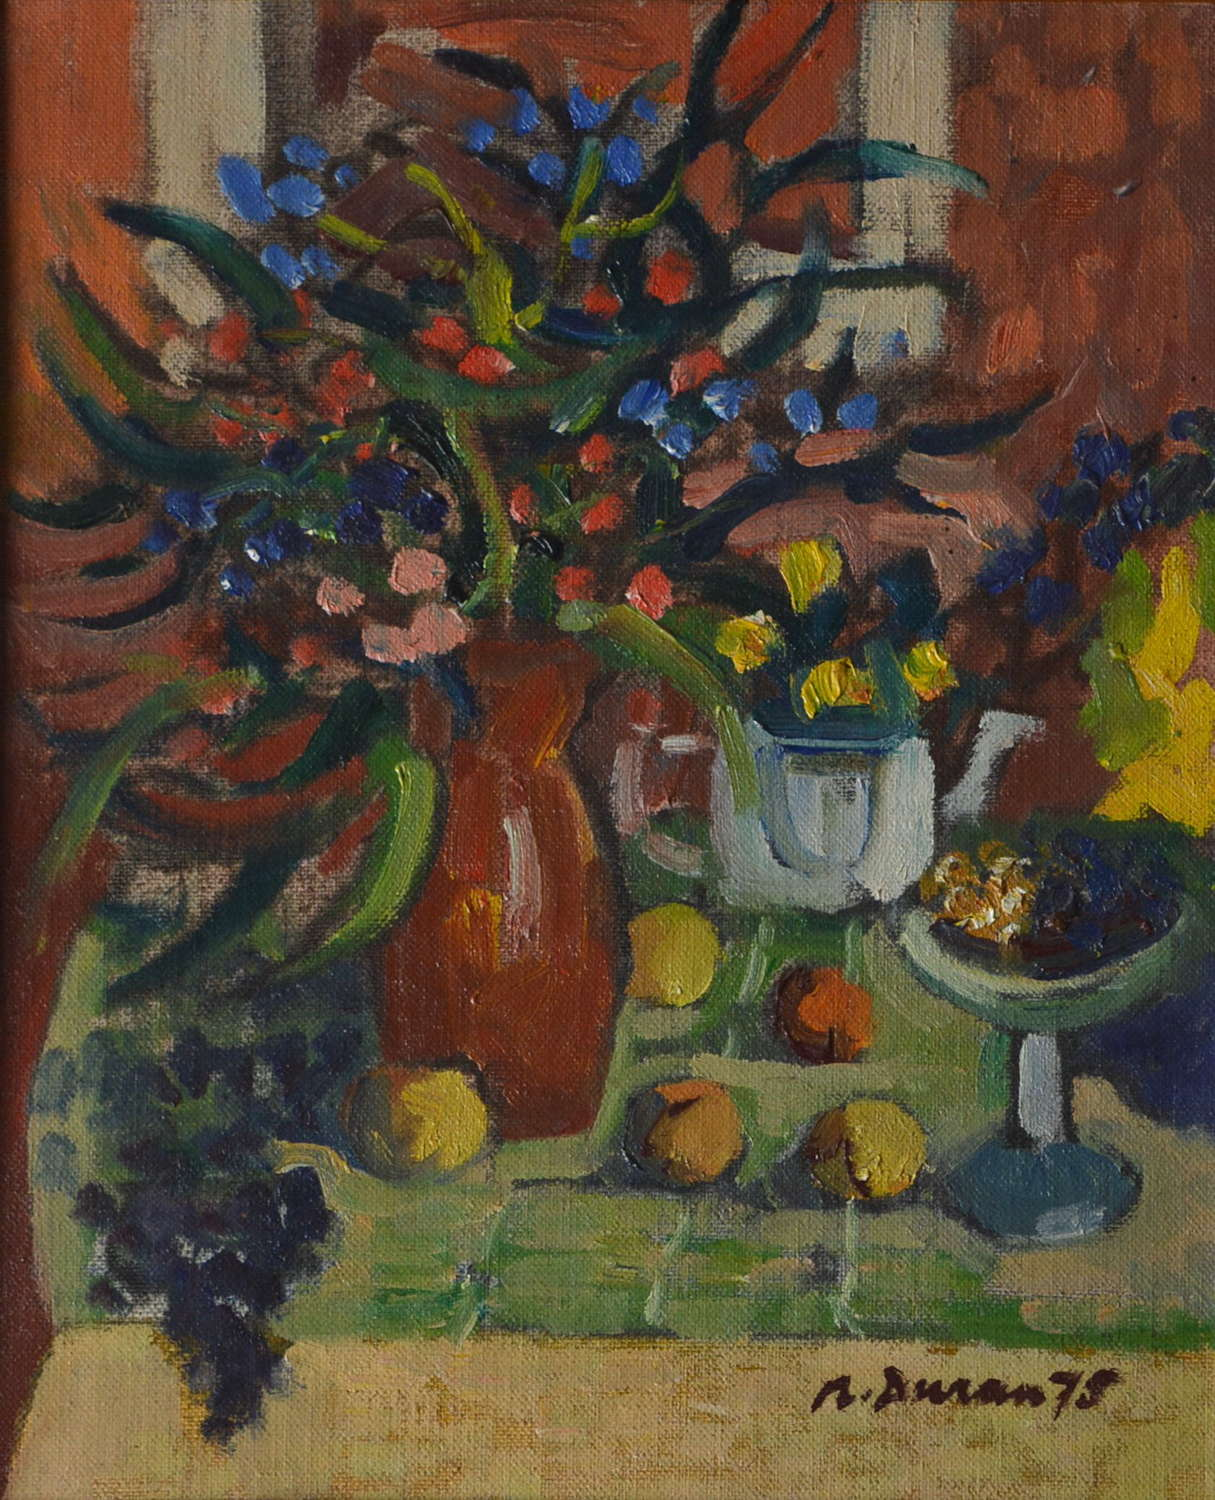 STILL LIFE OF FRUIT AND FLOWERS BY RAFAEL DURAN BENET